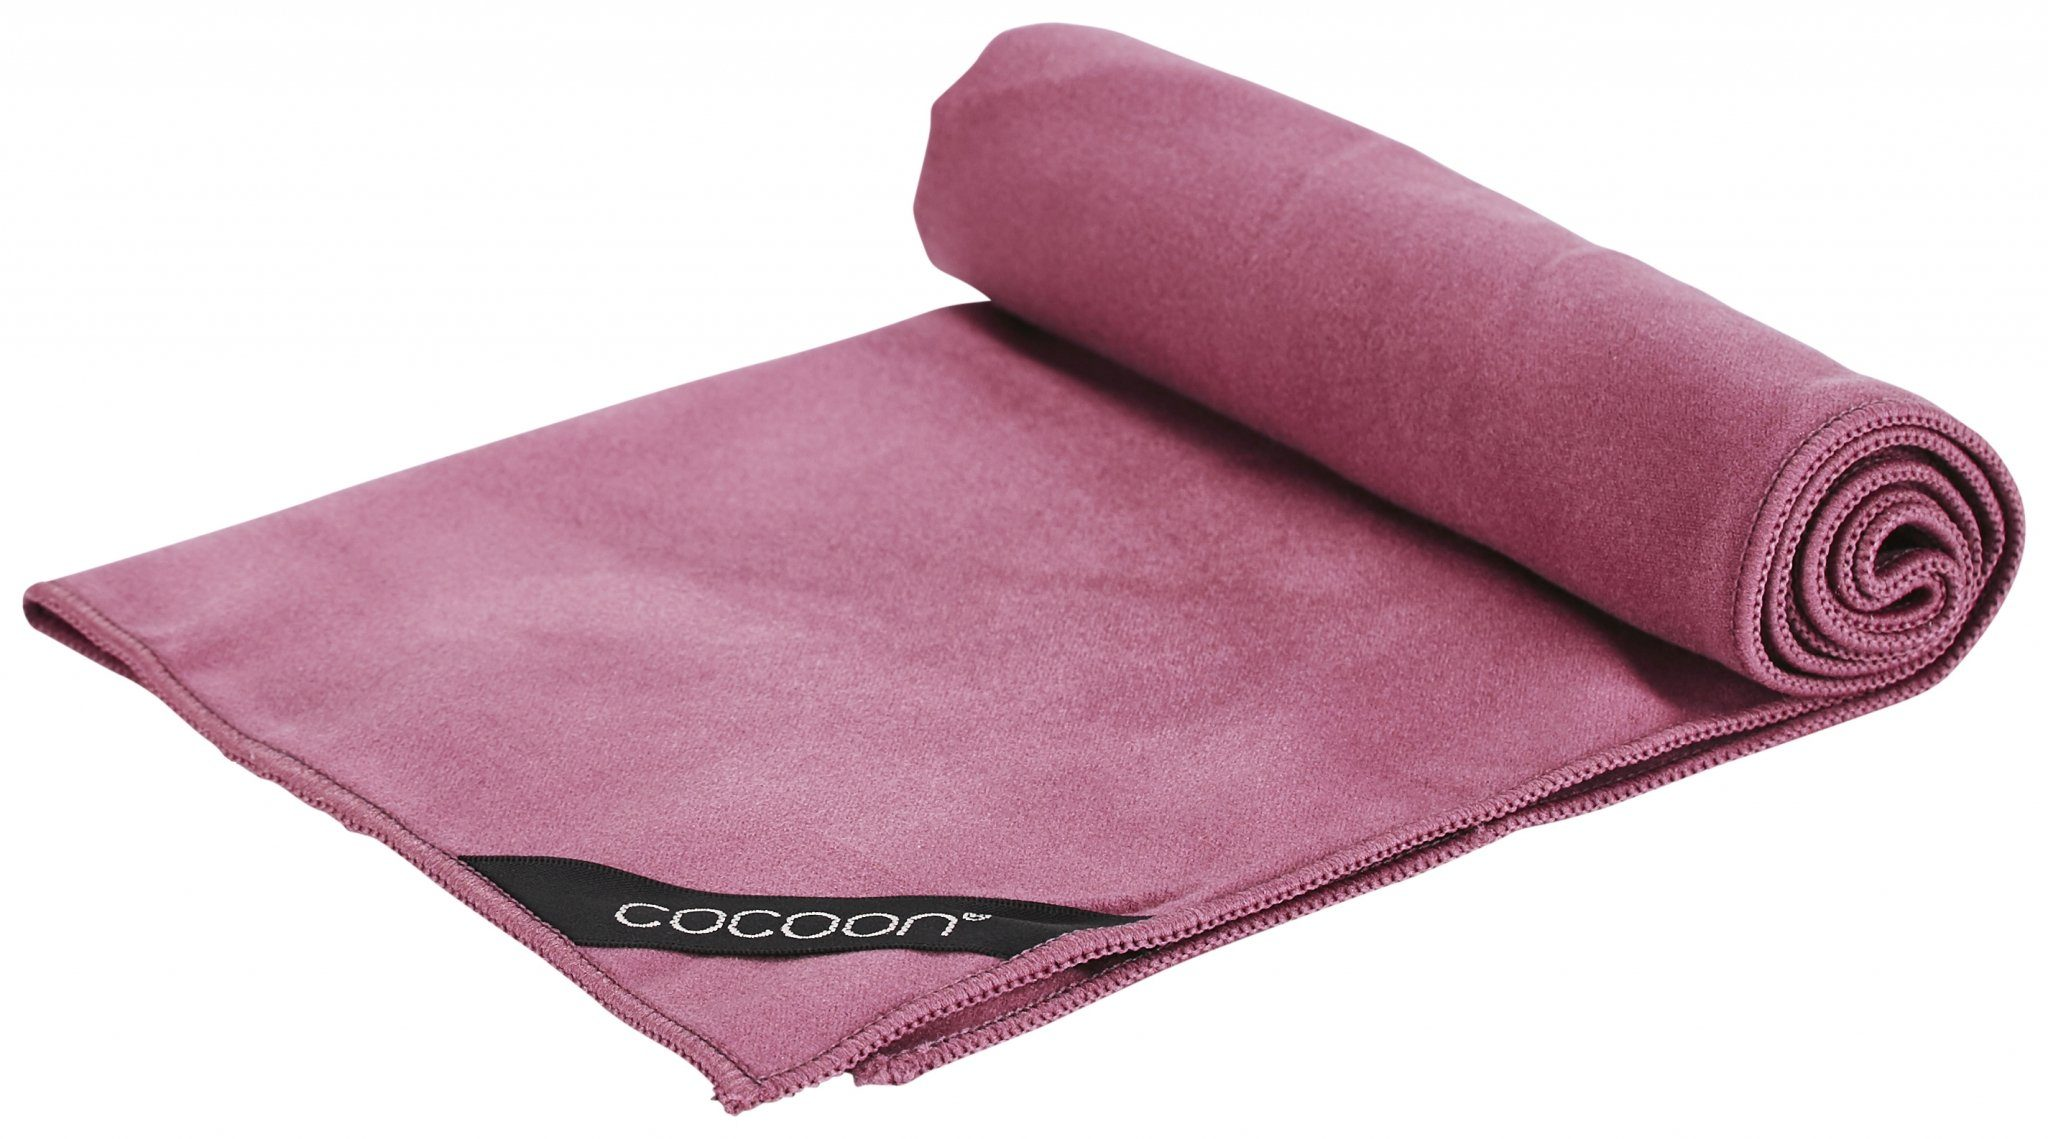 Cocoon Reisehandtuch »Microfiber Towel Ultralight Small«